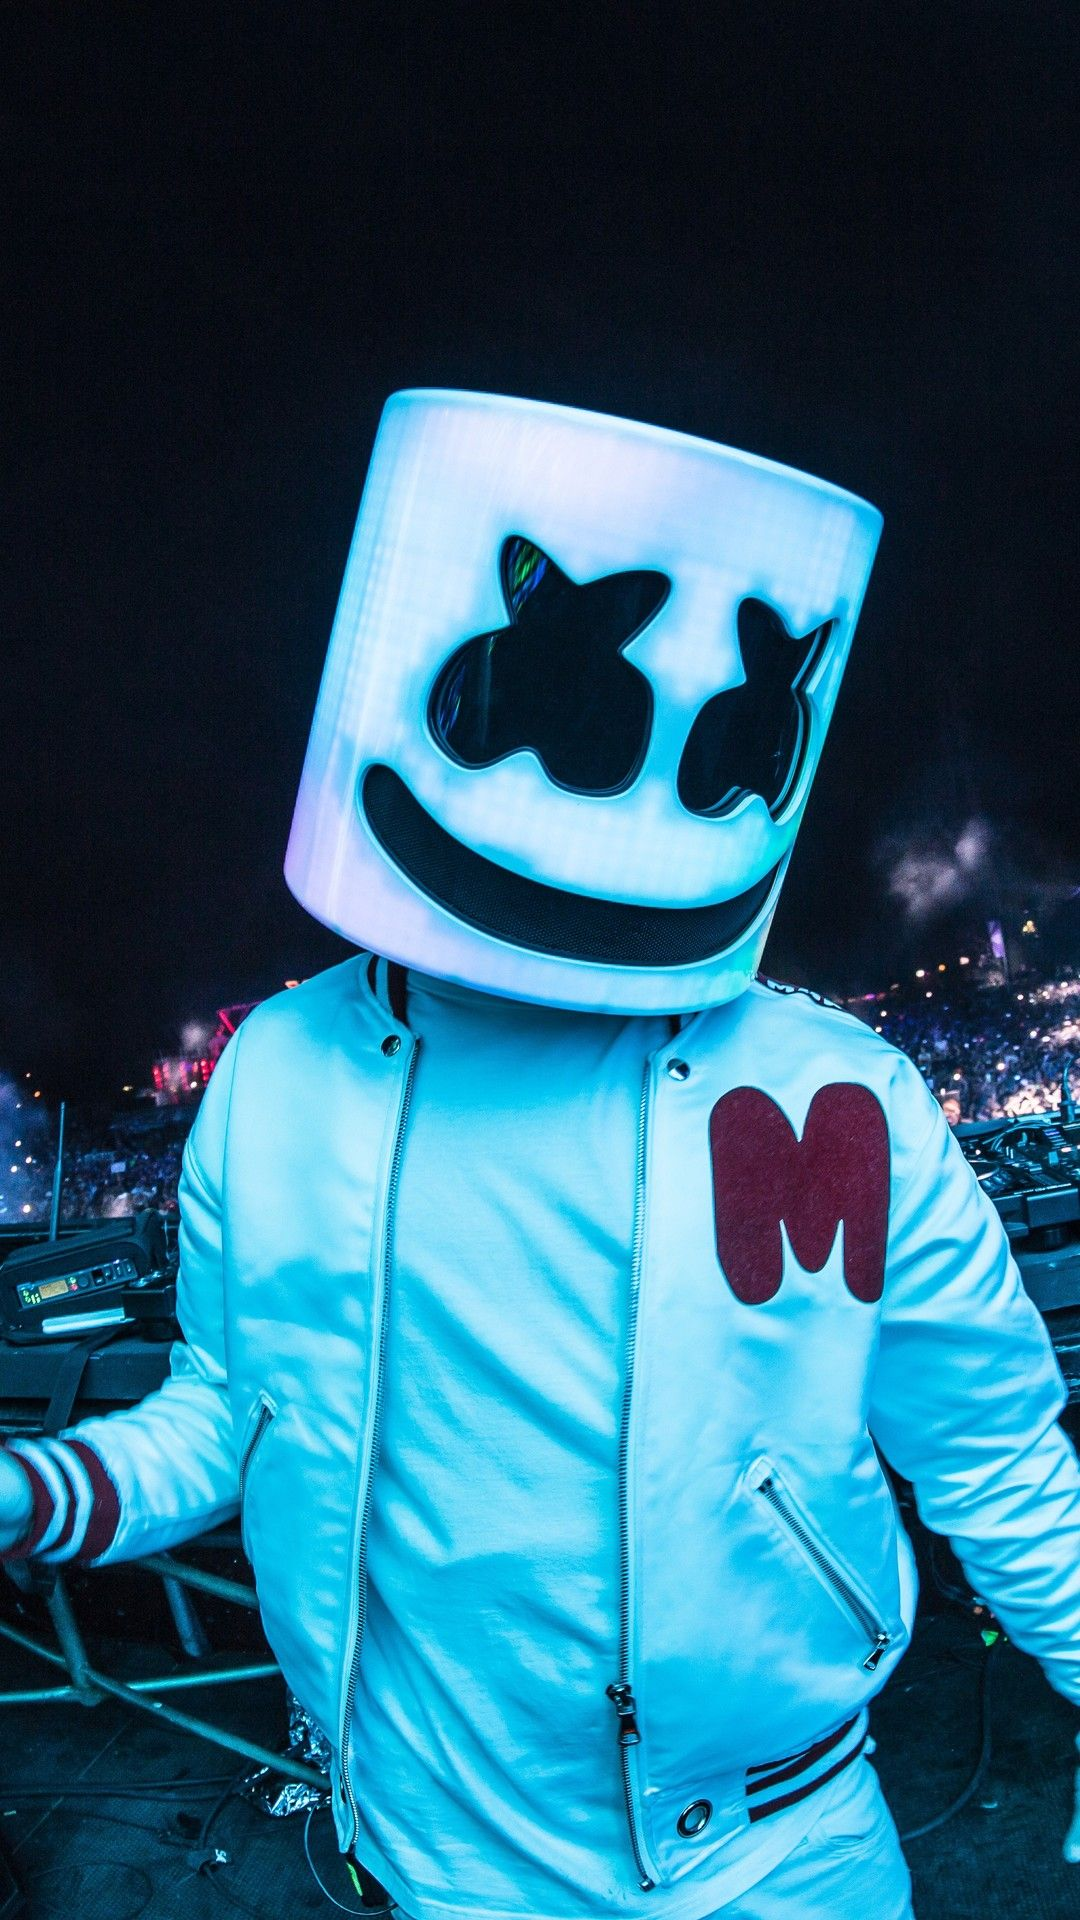 Marshmello 2018 On Stage Live Dj 5k In 1080x1920 Resolution Joker Iphone Wallpaper Download Cute Wallpapers Marshmallow Pictures